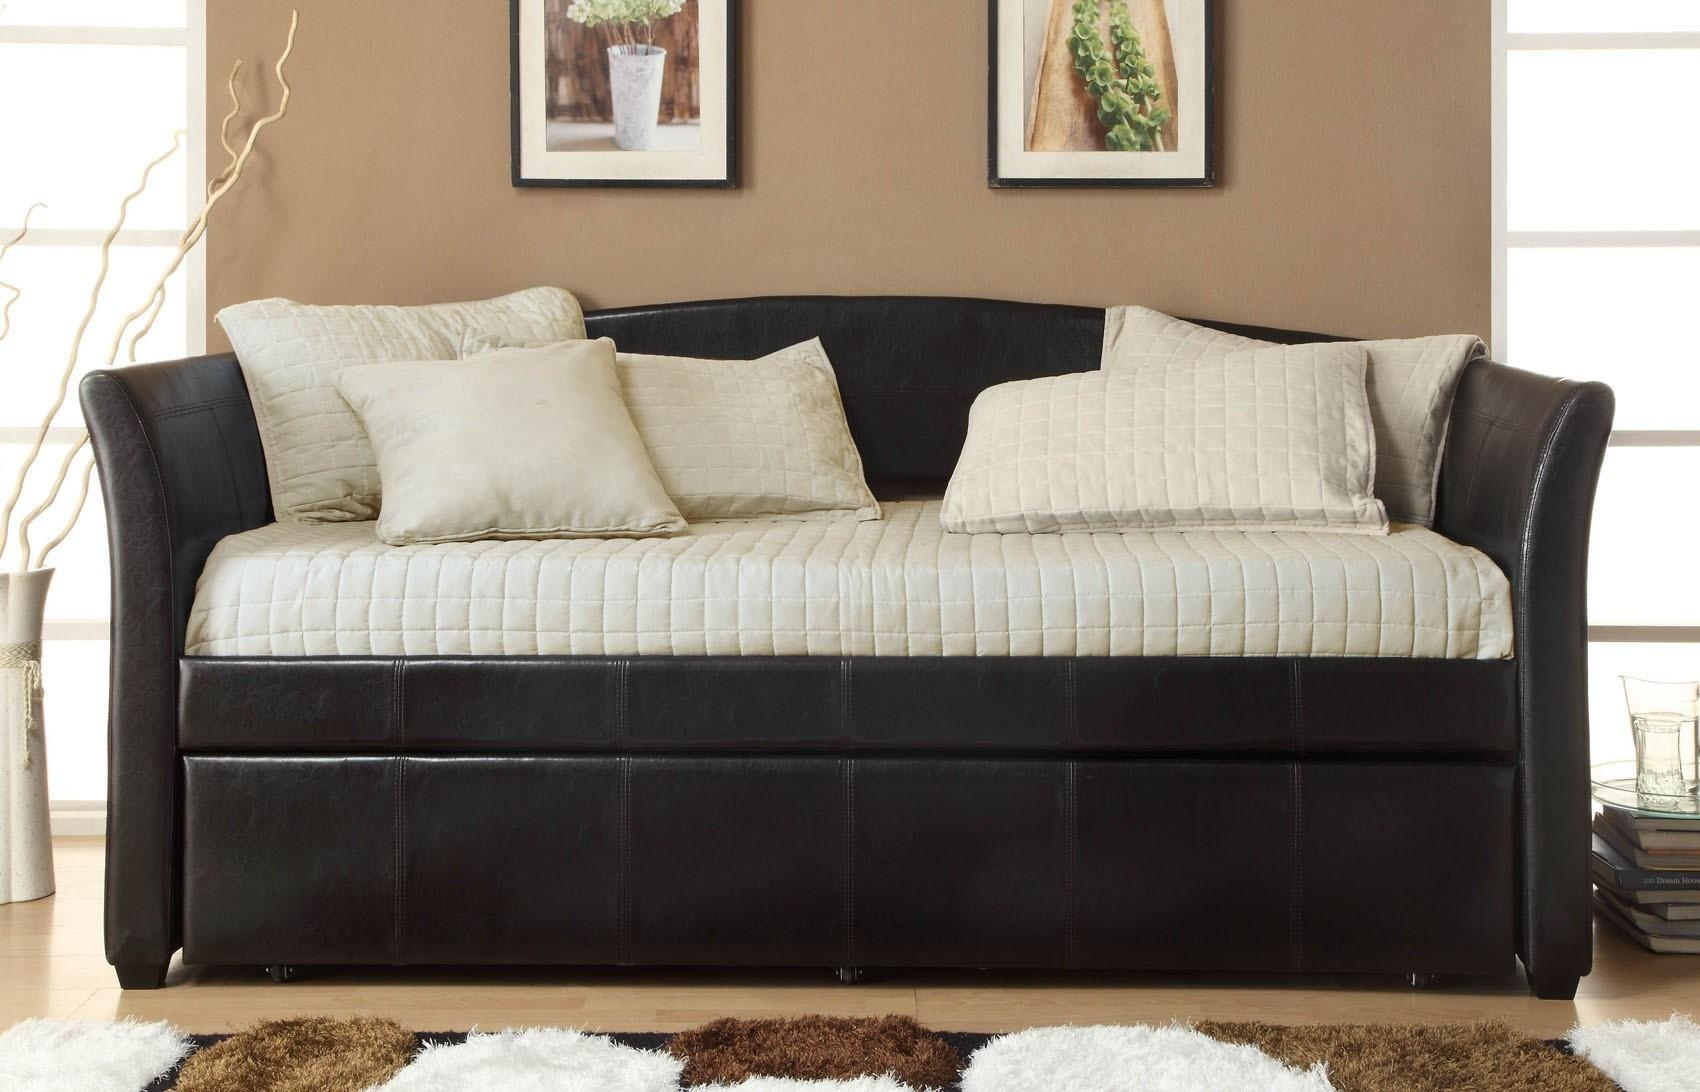 Bedroom Furniture : Leather Sleeper Sofa Sofa Convertibles With Sofa Convertibles (View 13 of 20)